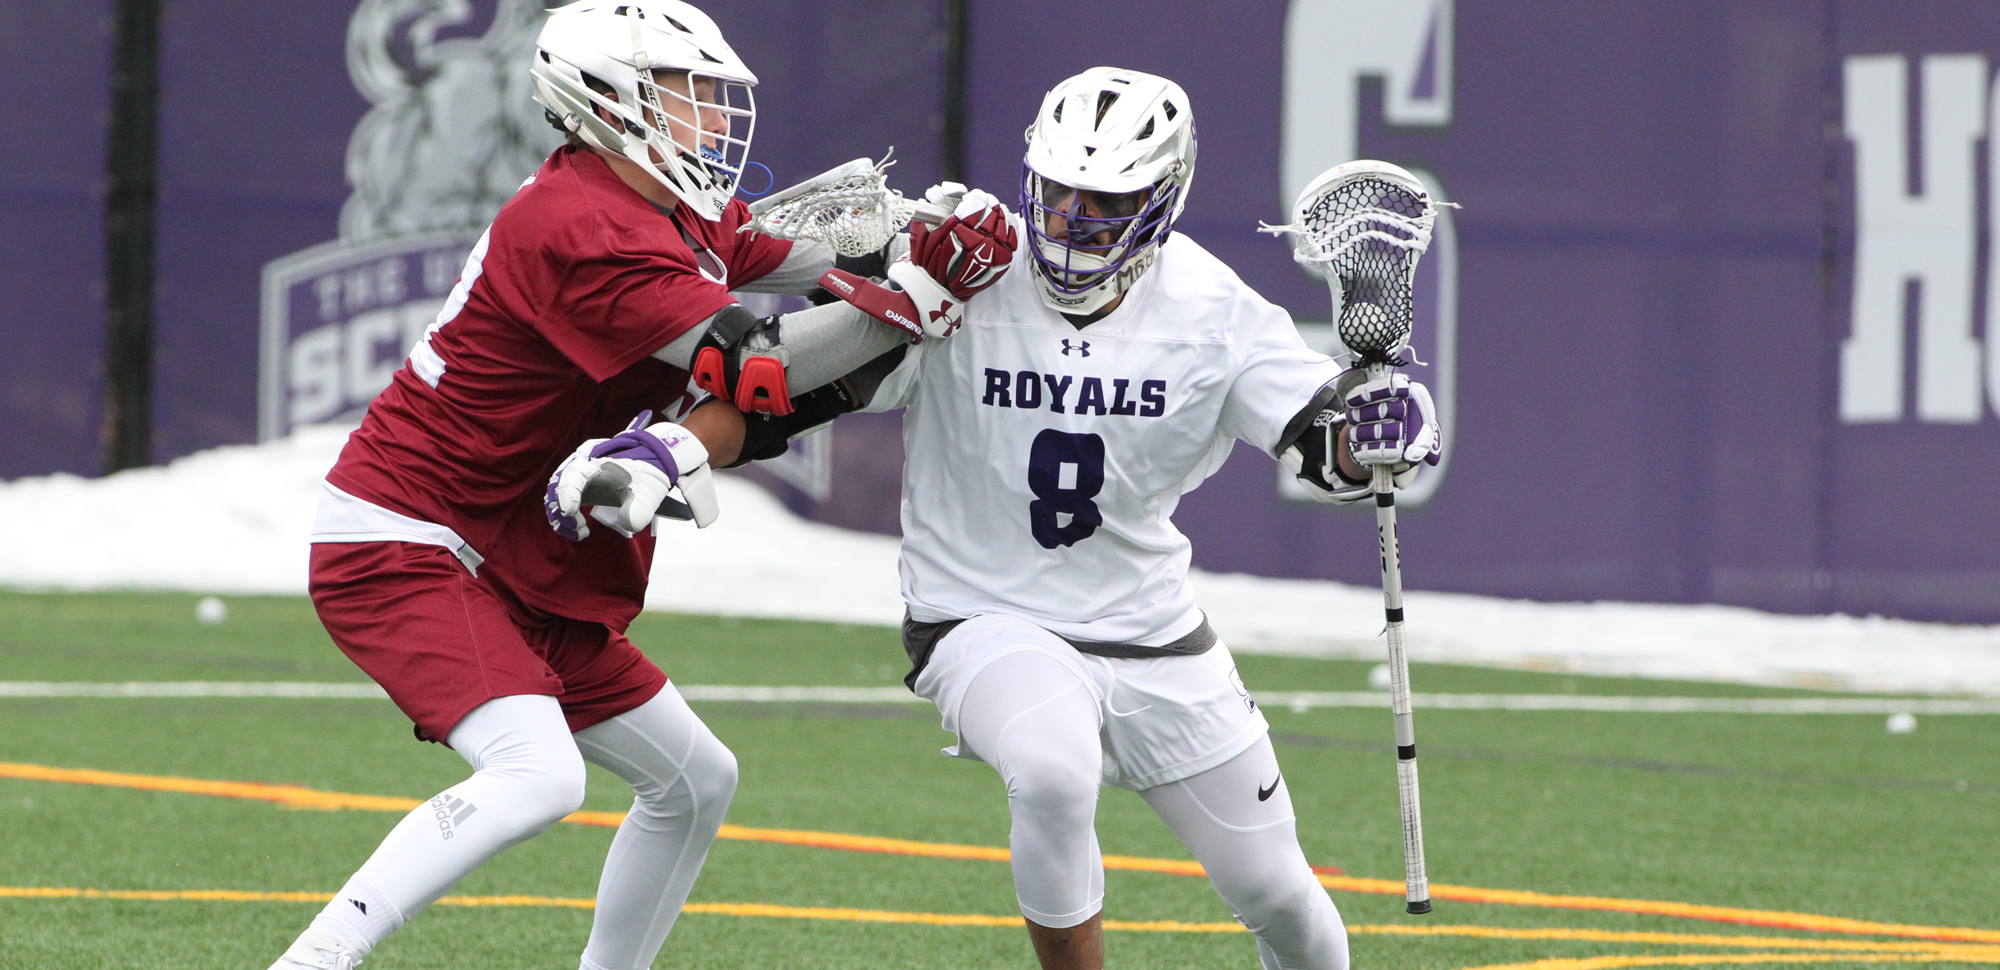 Men's Lacrosse Comes Up on Short Side of 16-15 Thriller With Muhlenberg